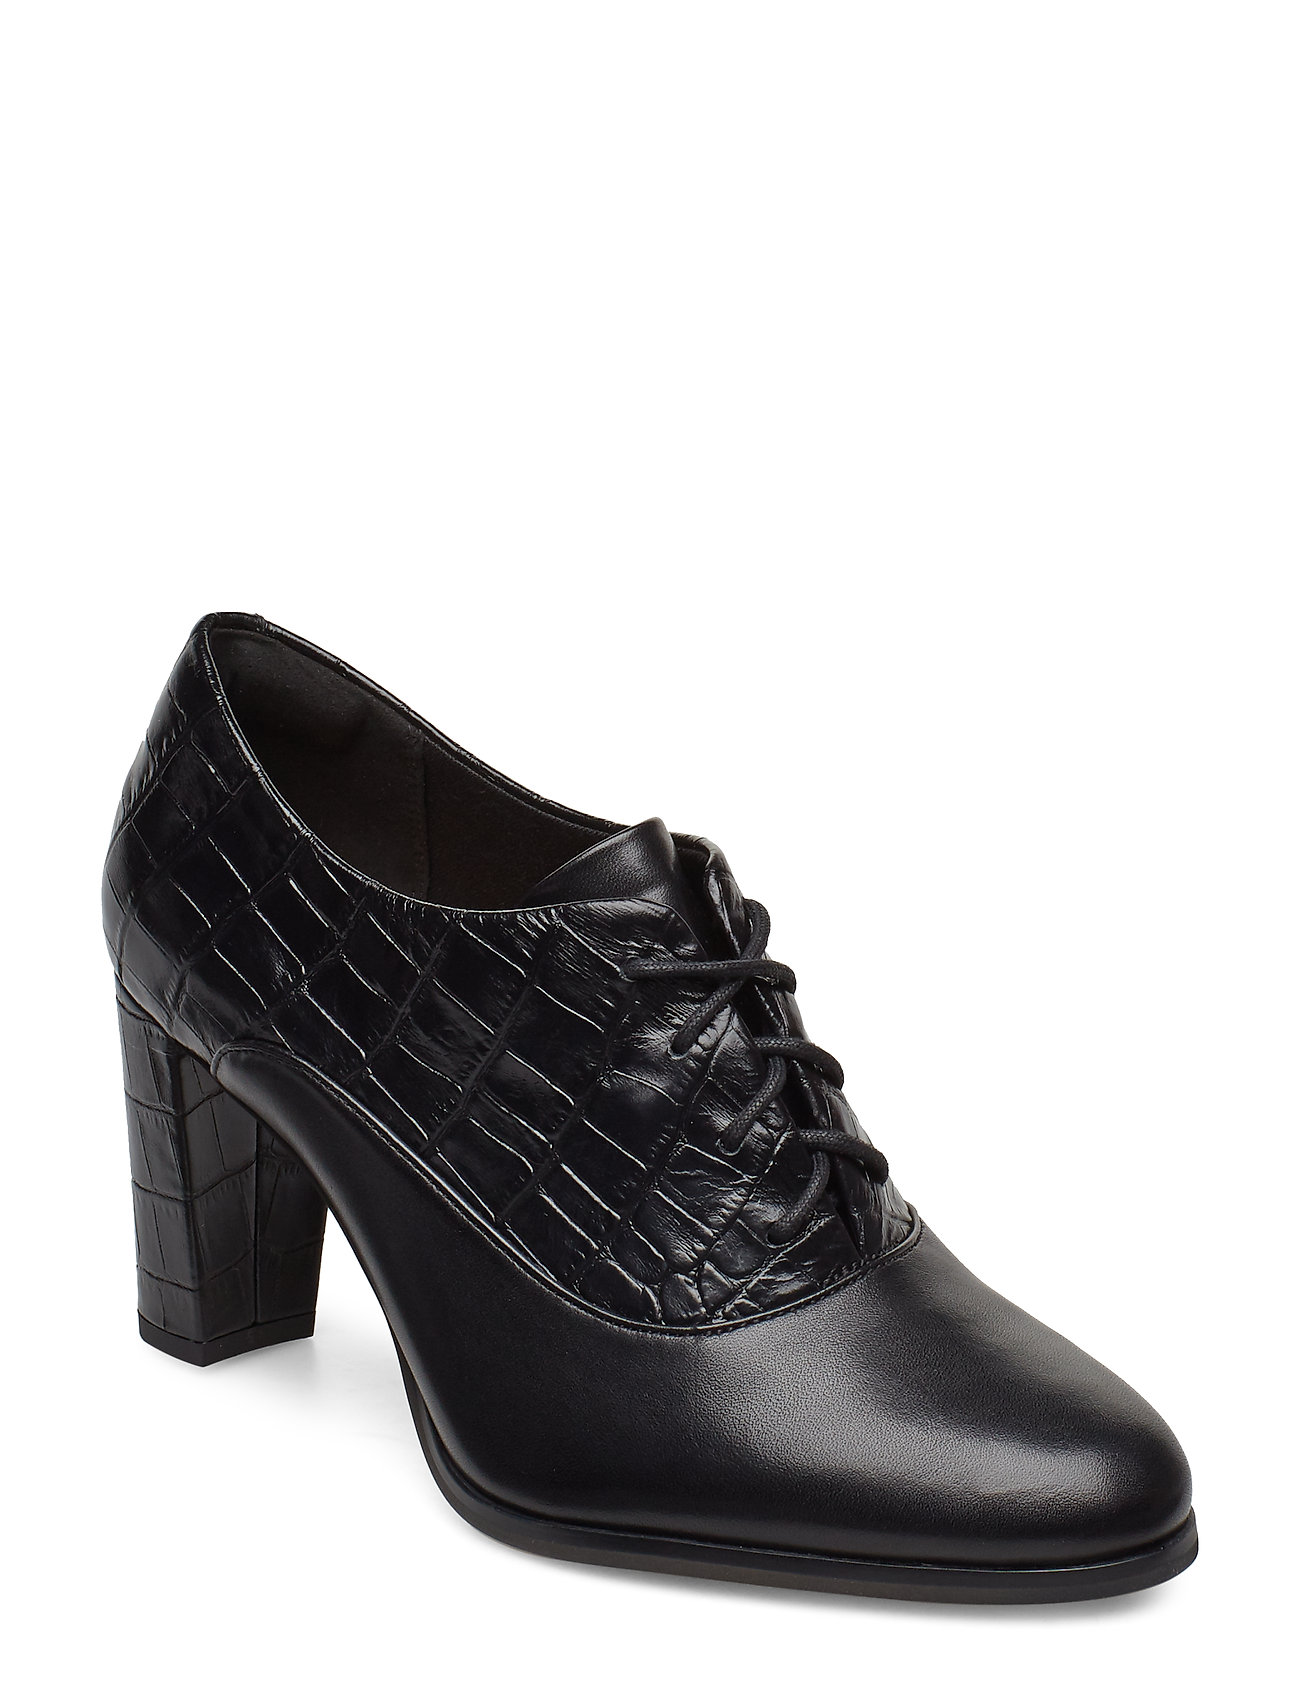 CLARKS Kaylin Ida Shoes Boots Ankle Boots Ankle Boots With Heel Schwarz CLARKS